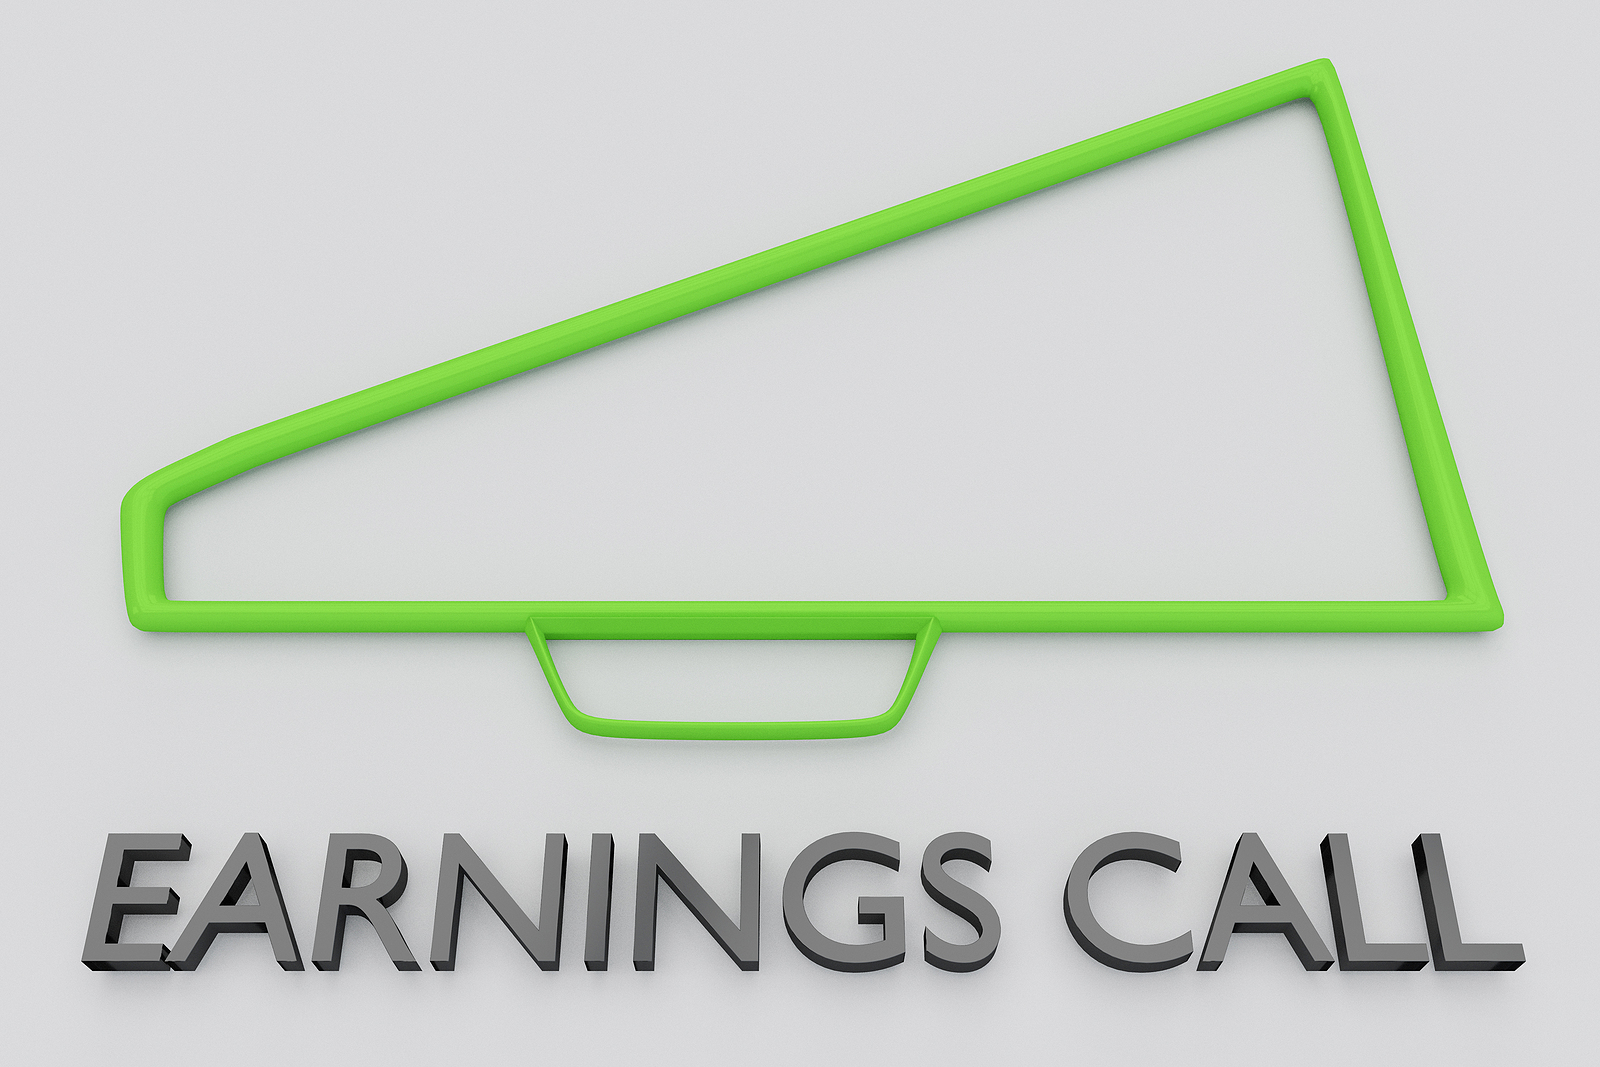 Earnings and stock charts